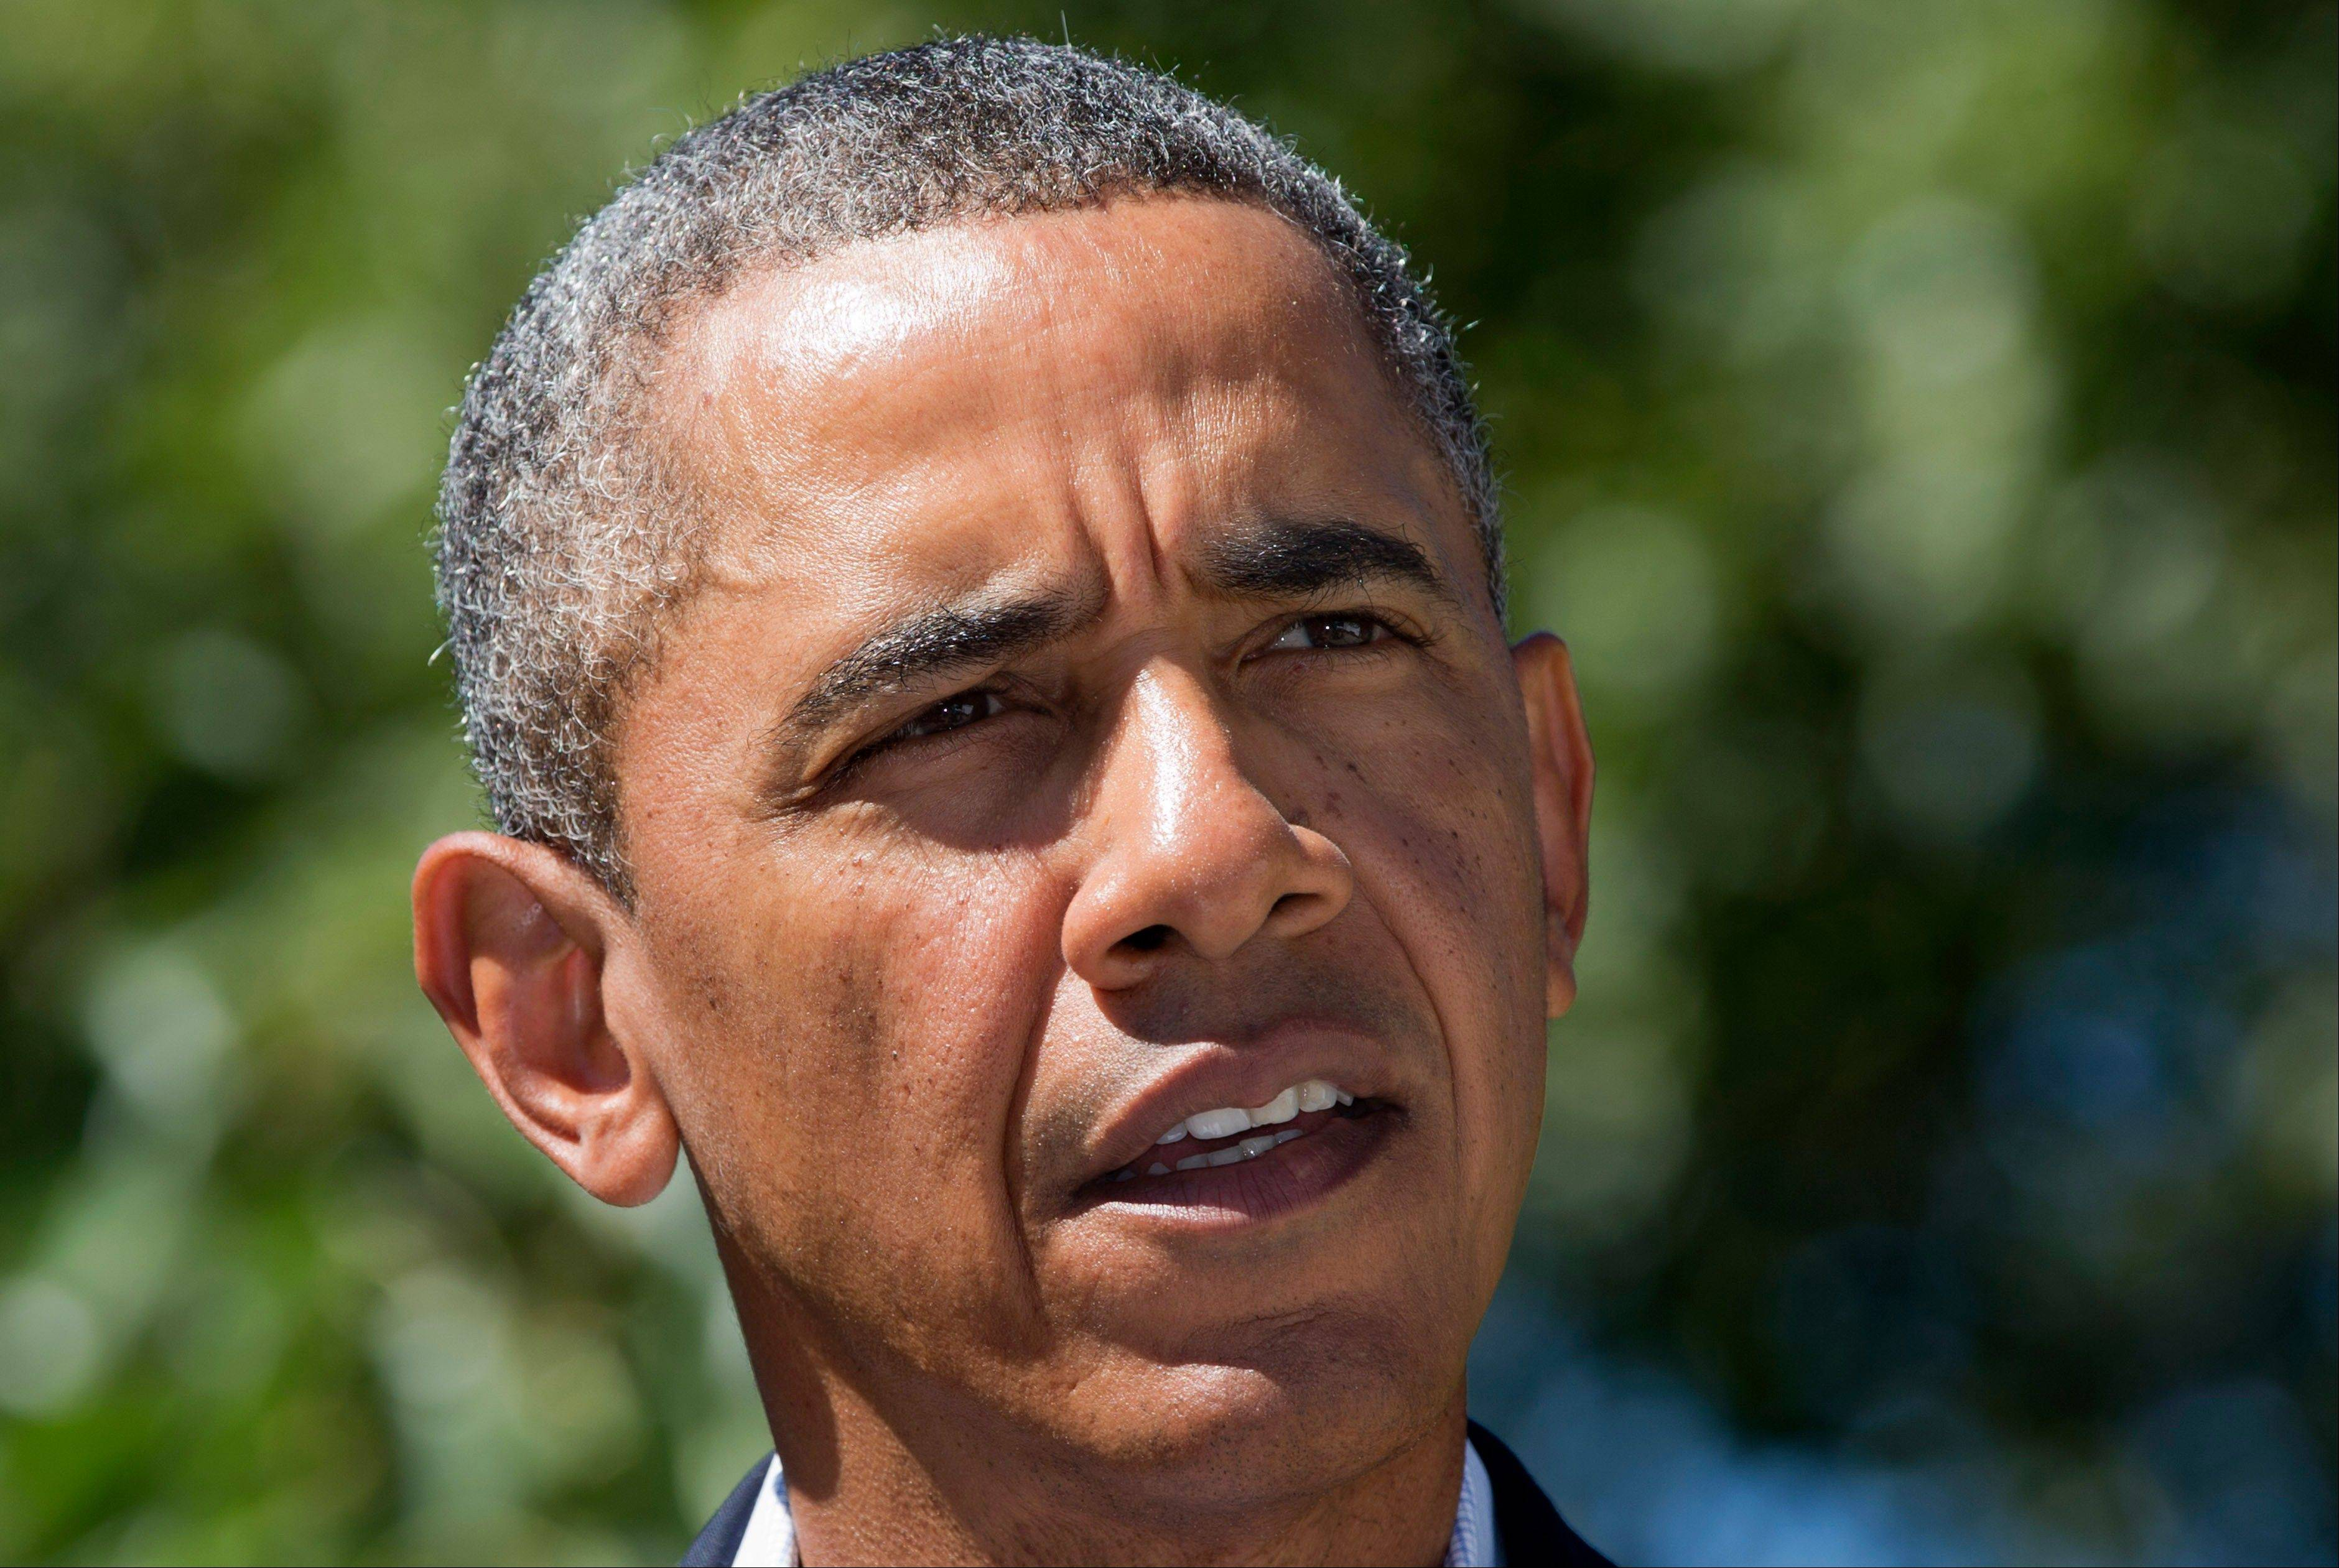 President Barack Obama makes a statement to the media regarding events in Egypt, from his rental vacation home in Chilmark Mass., on the island of Martha�s Vineyard, Thursday, Aug. 15, 2013. The president announced that the US is canceling joint military exercise with Egypt amid violence.